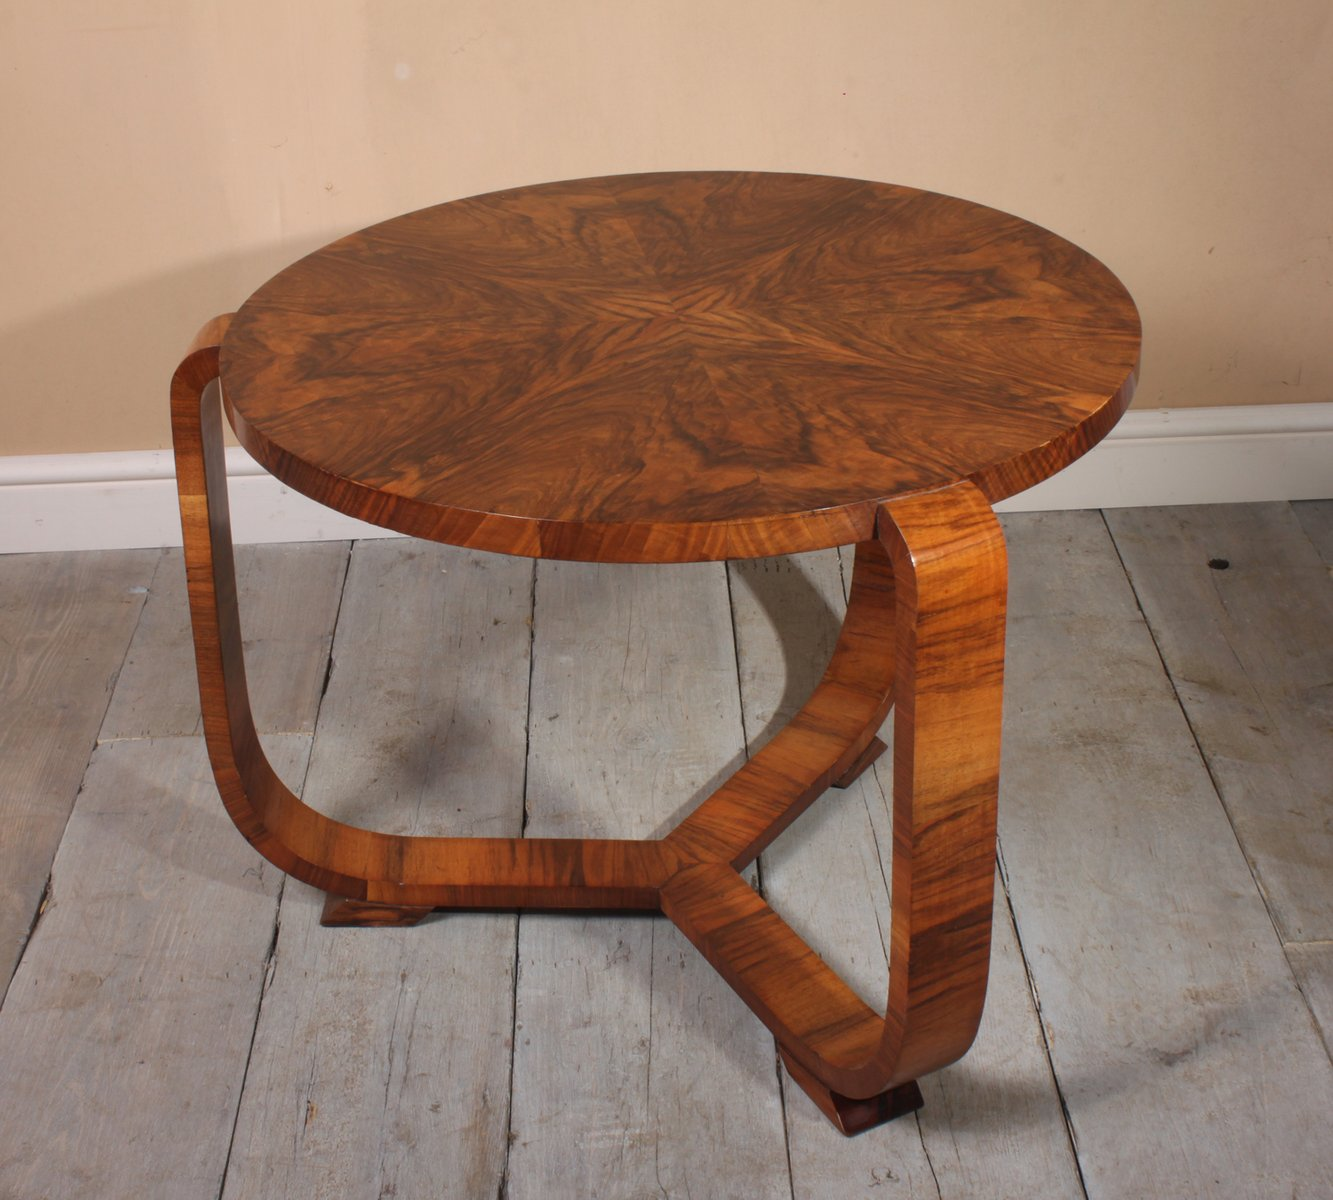 Art Deco Coffee Table From Thonet, 1930s For Sale At Pamono